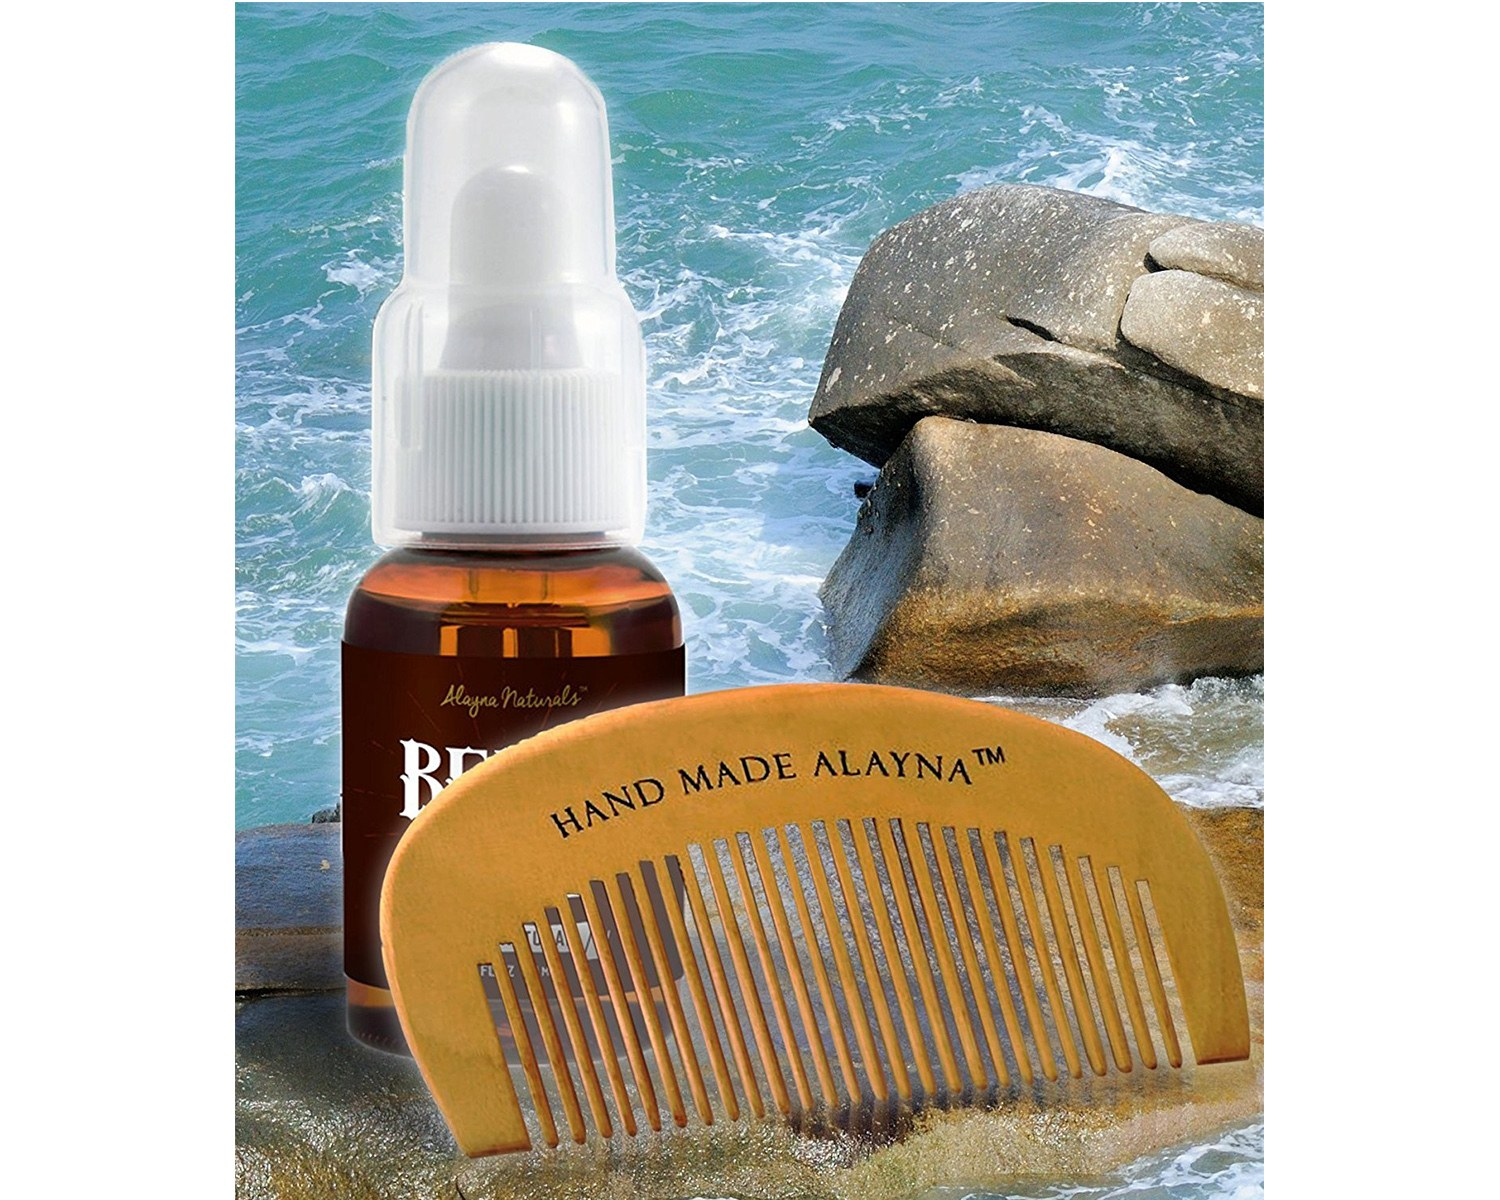 Alayna Organic Naturals Beard Oil and Leave-In Conditioner